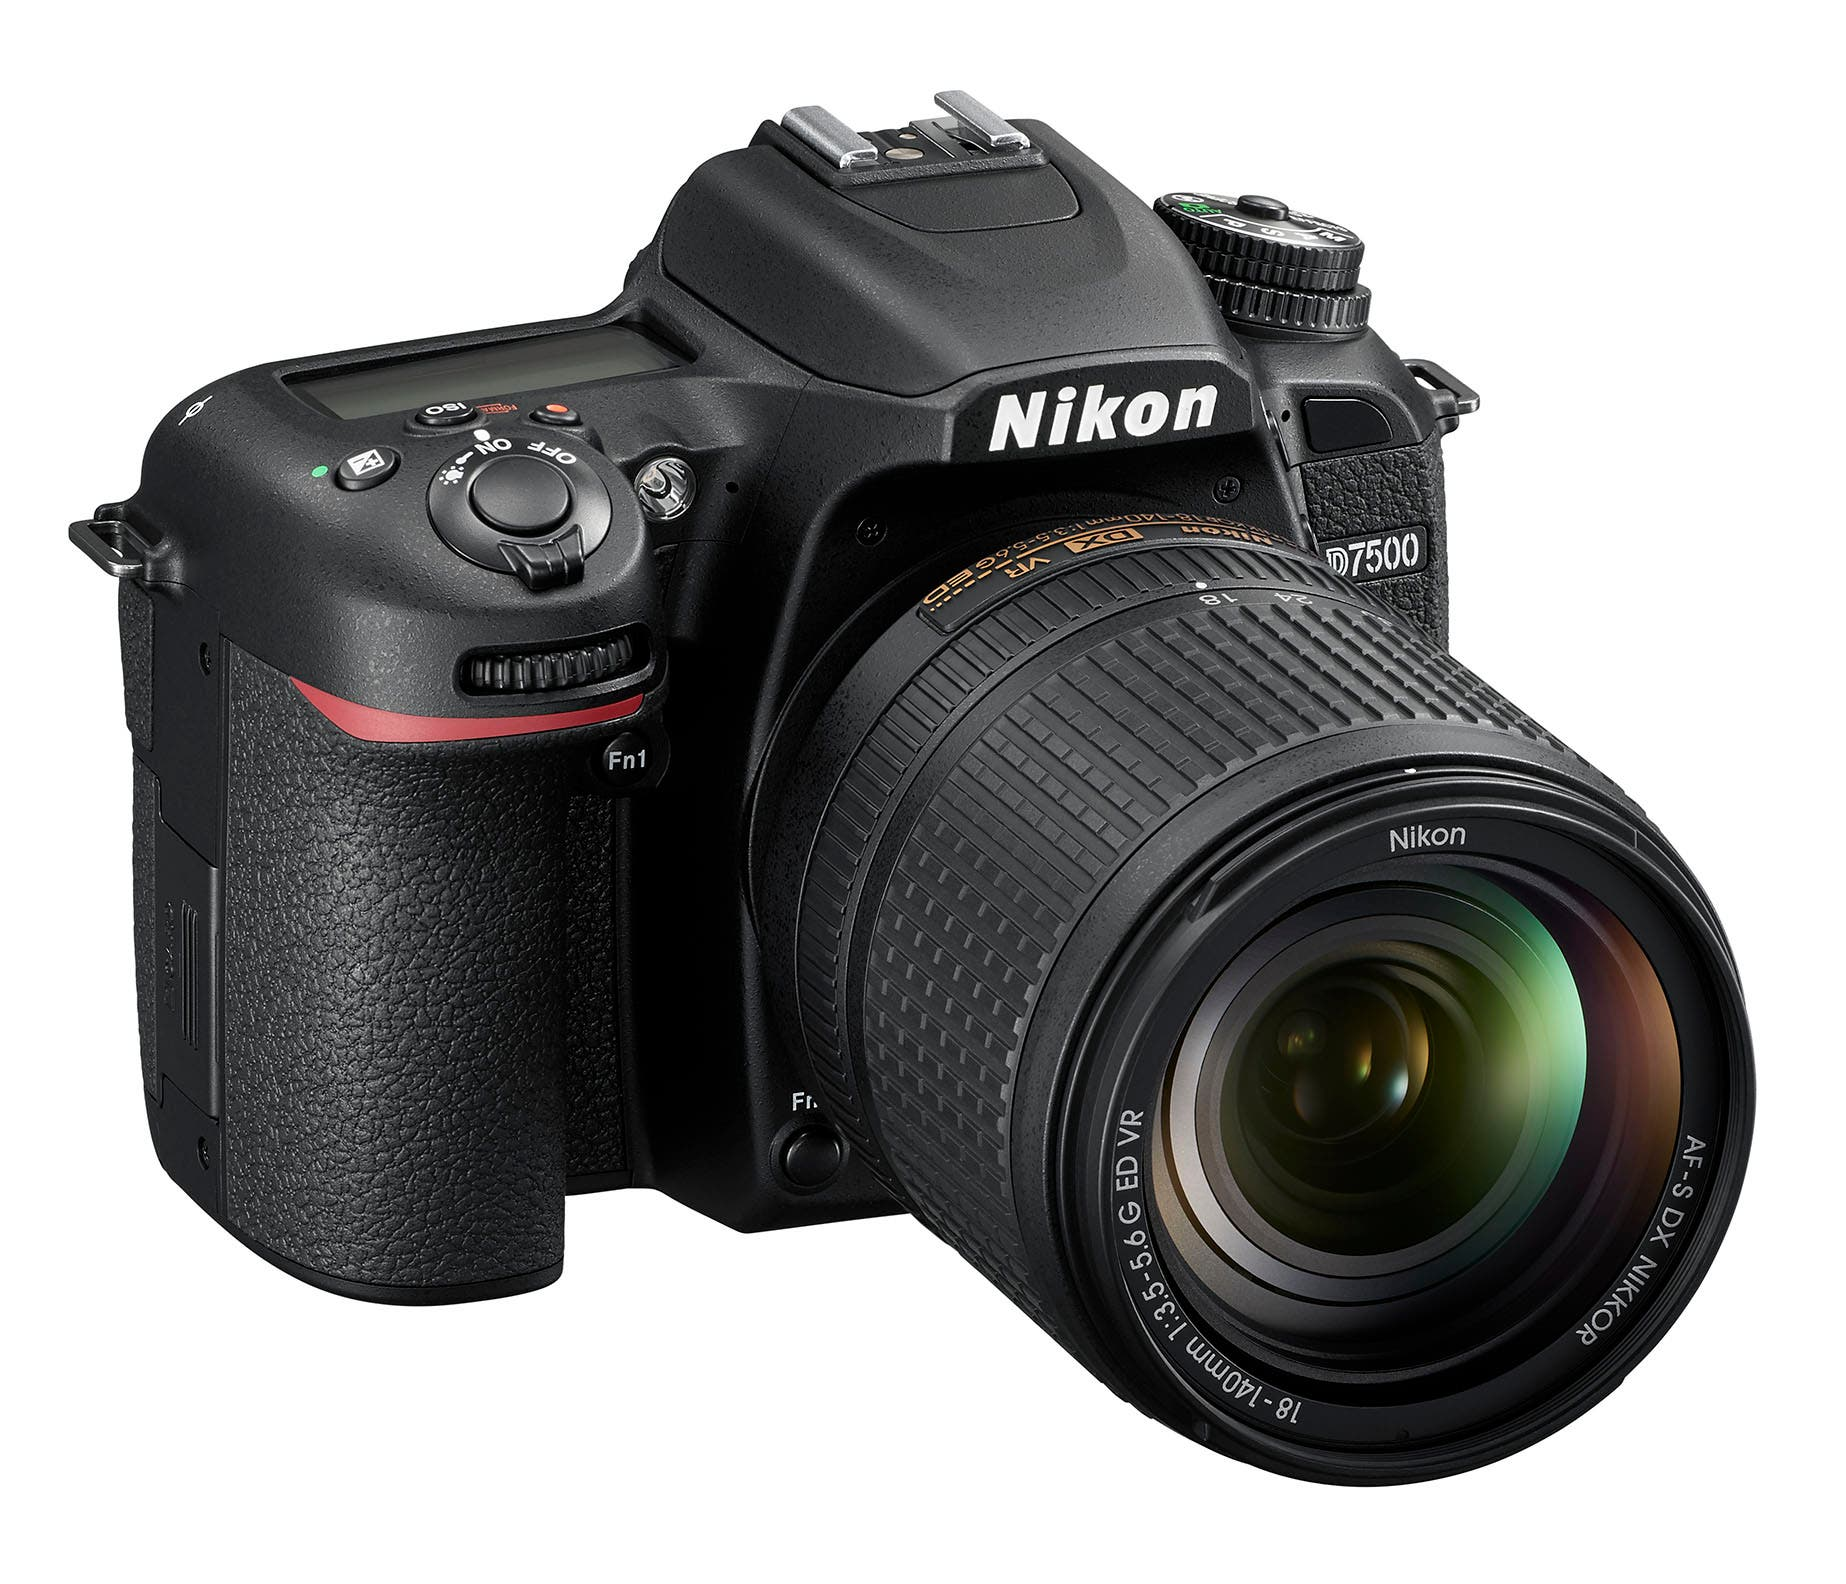 The Nikon D7500 is the Nikon D500's Little Brother